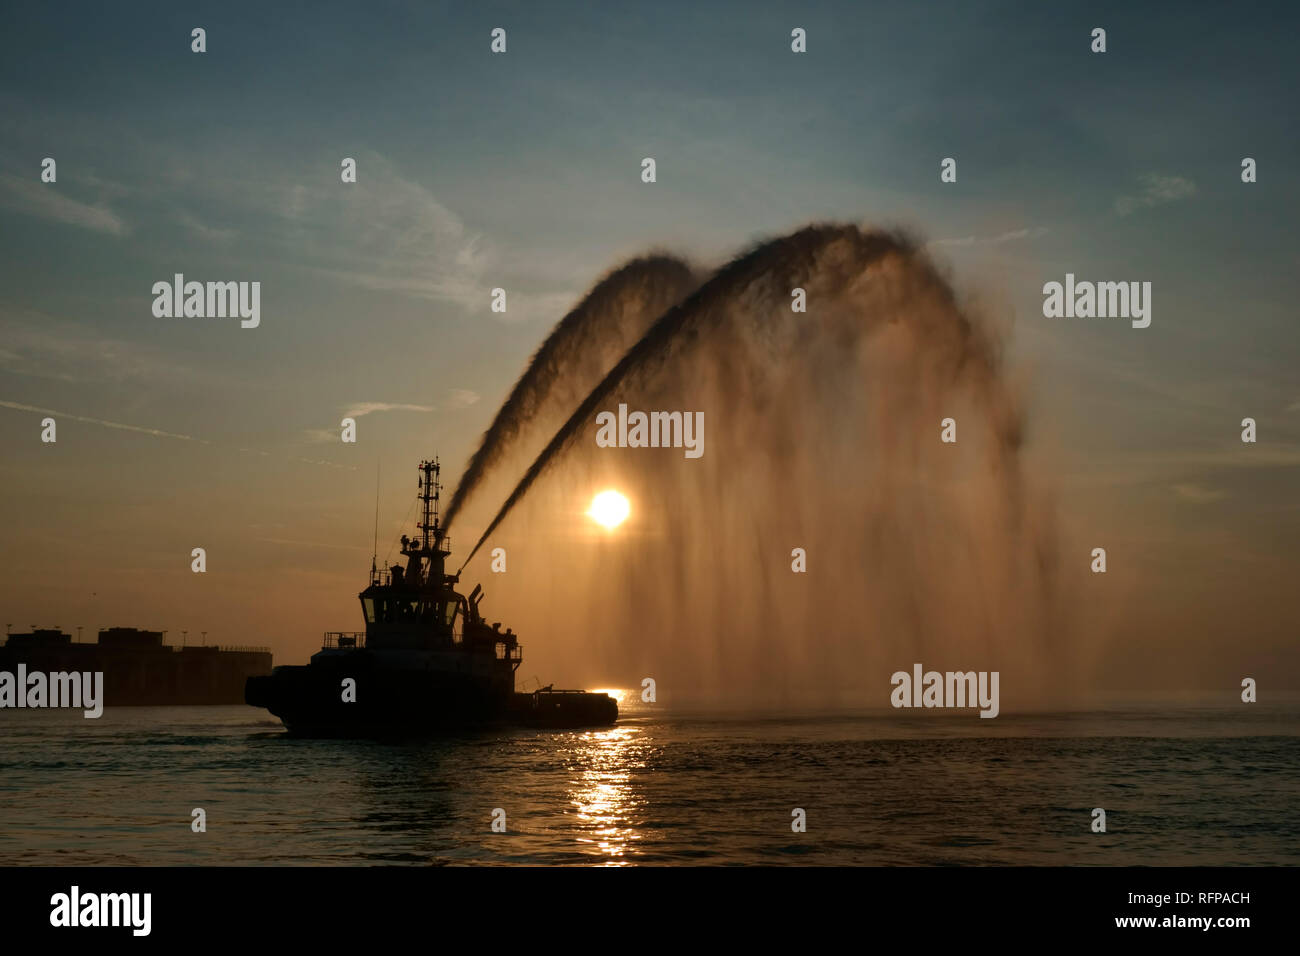 Fire boat in the harbor. Water cannon salute during an event. - Stock Image